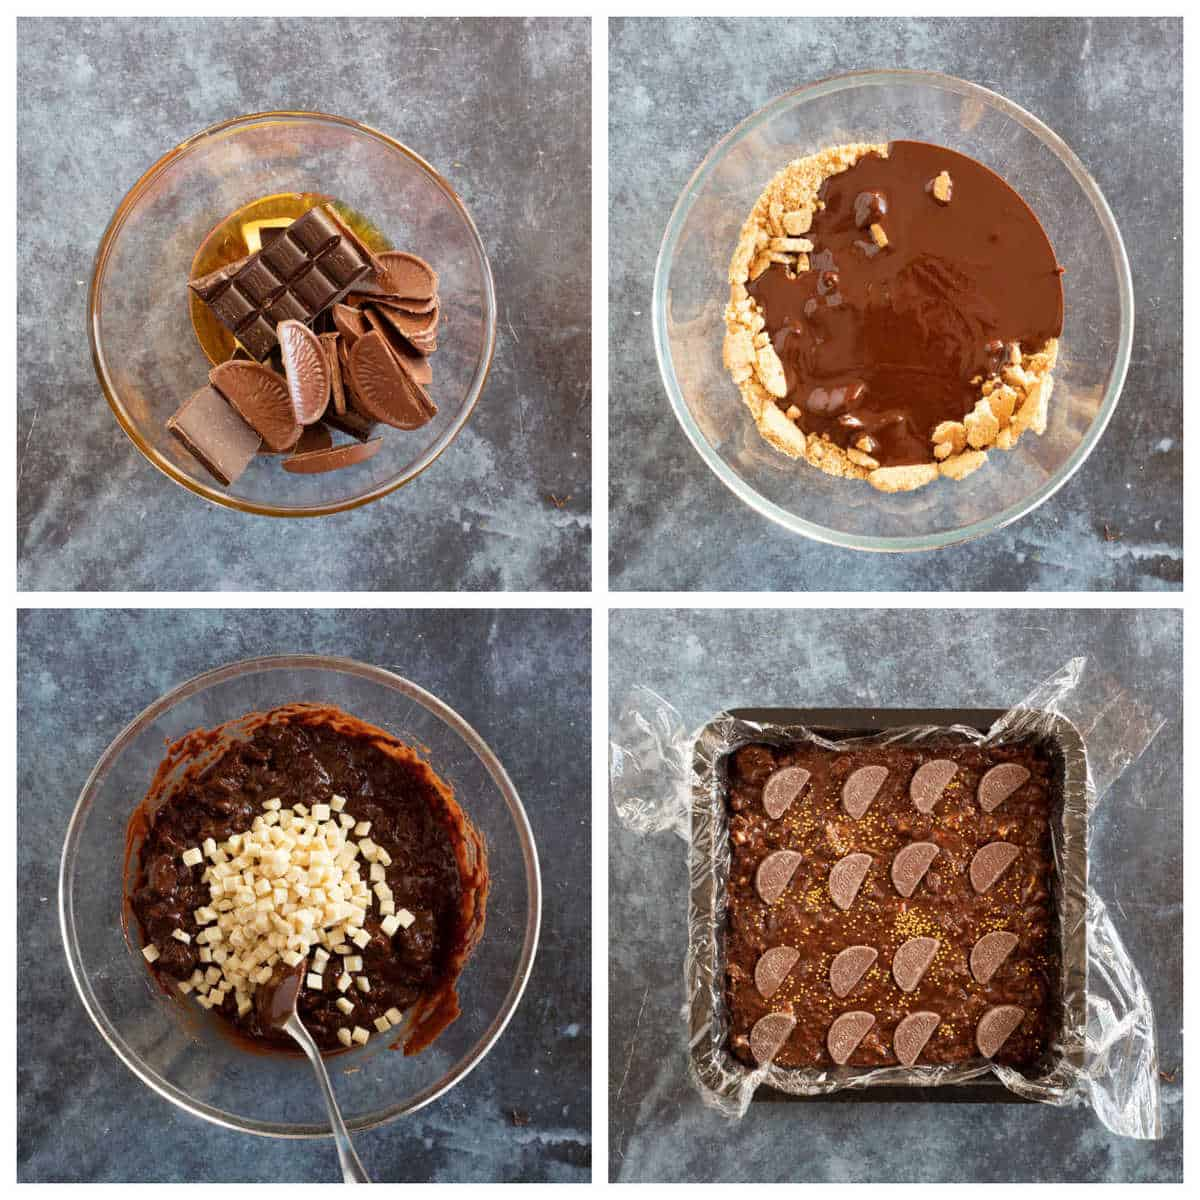 Step by step  photo instructions for making chocolate orange tiffin.